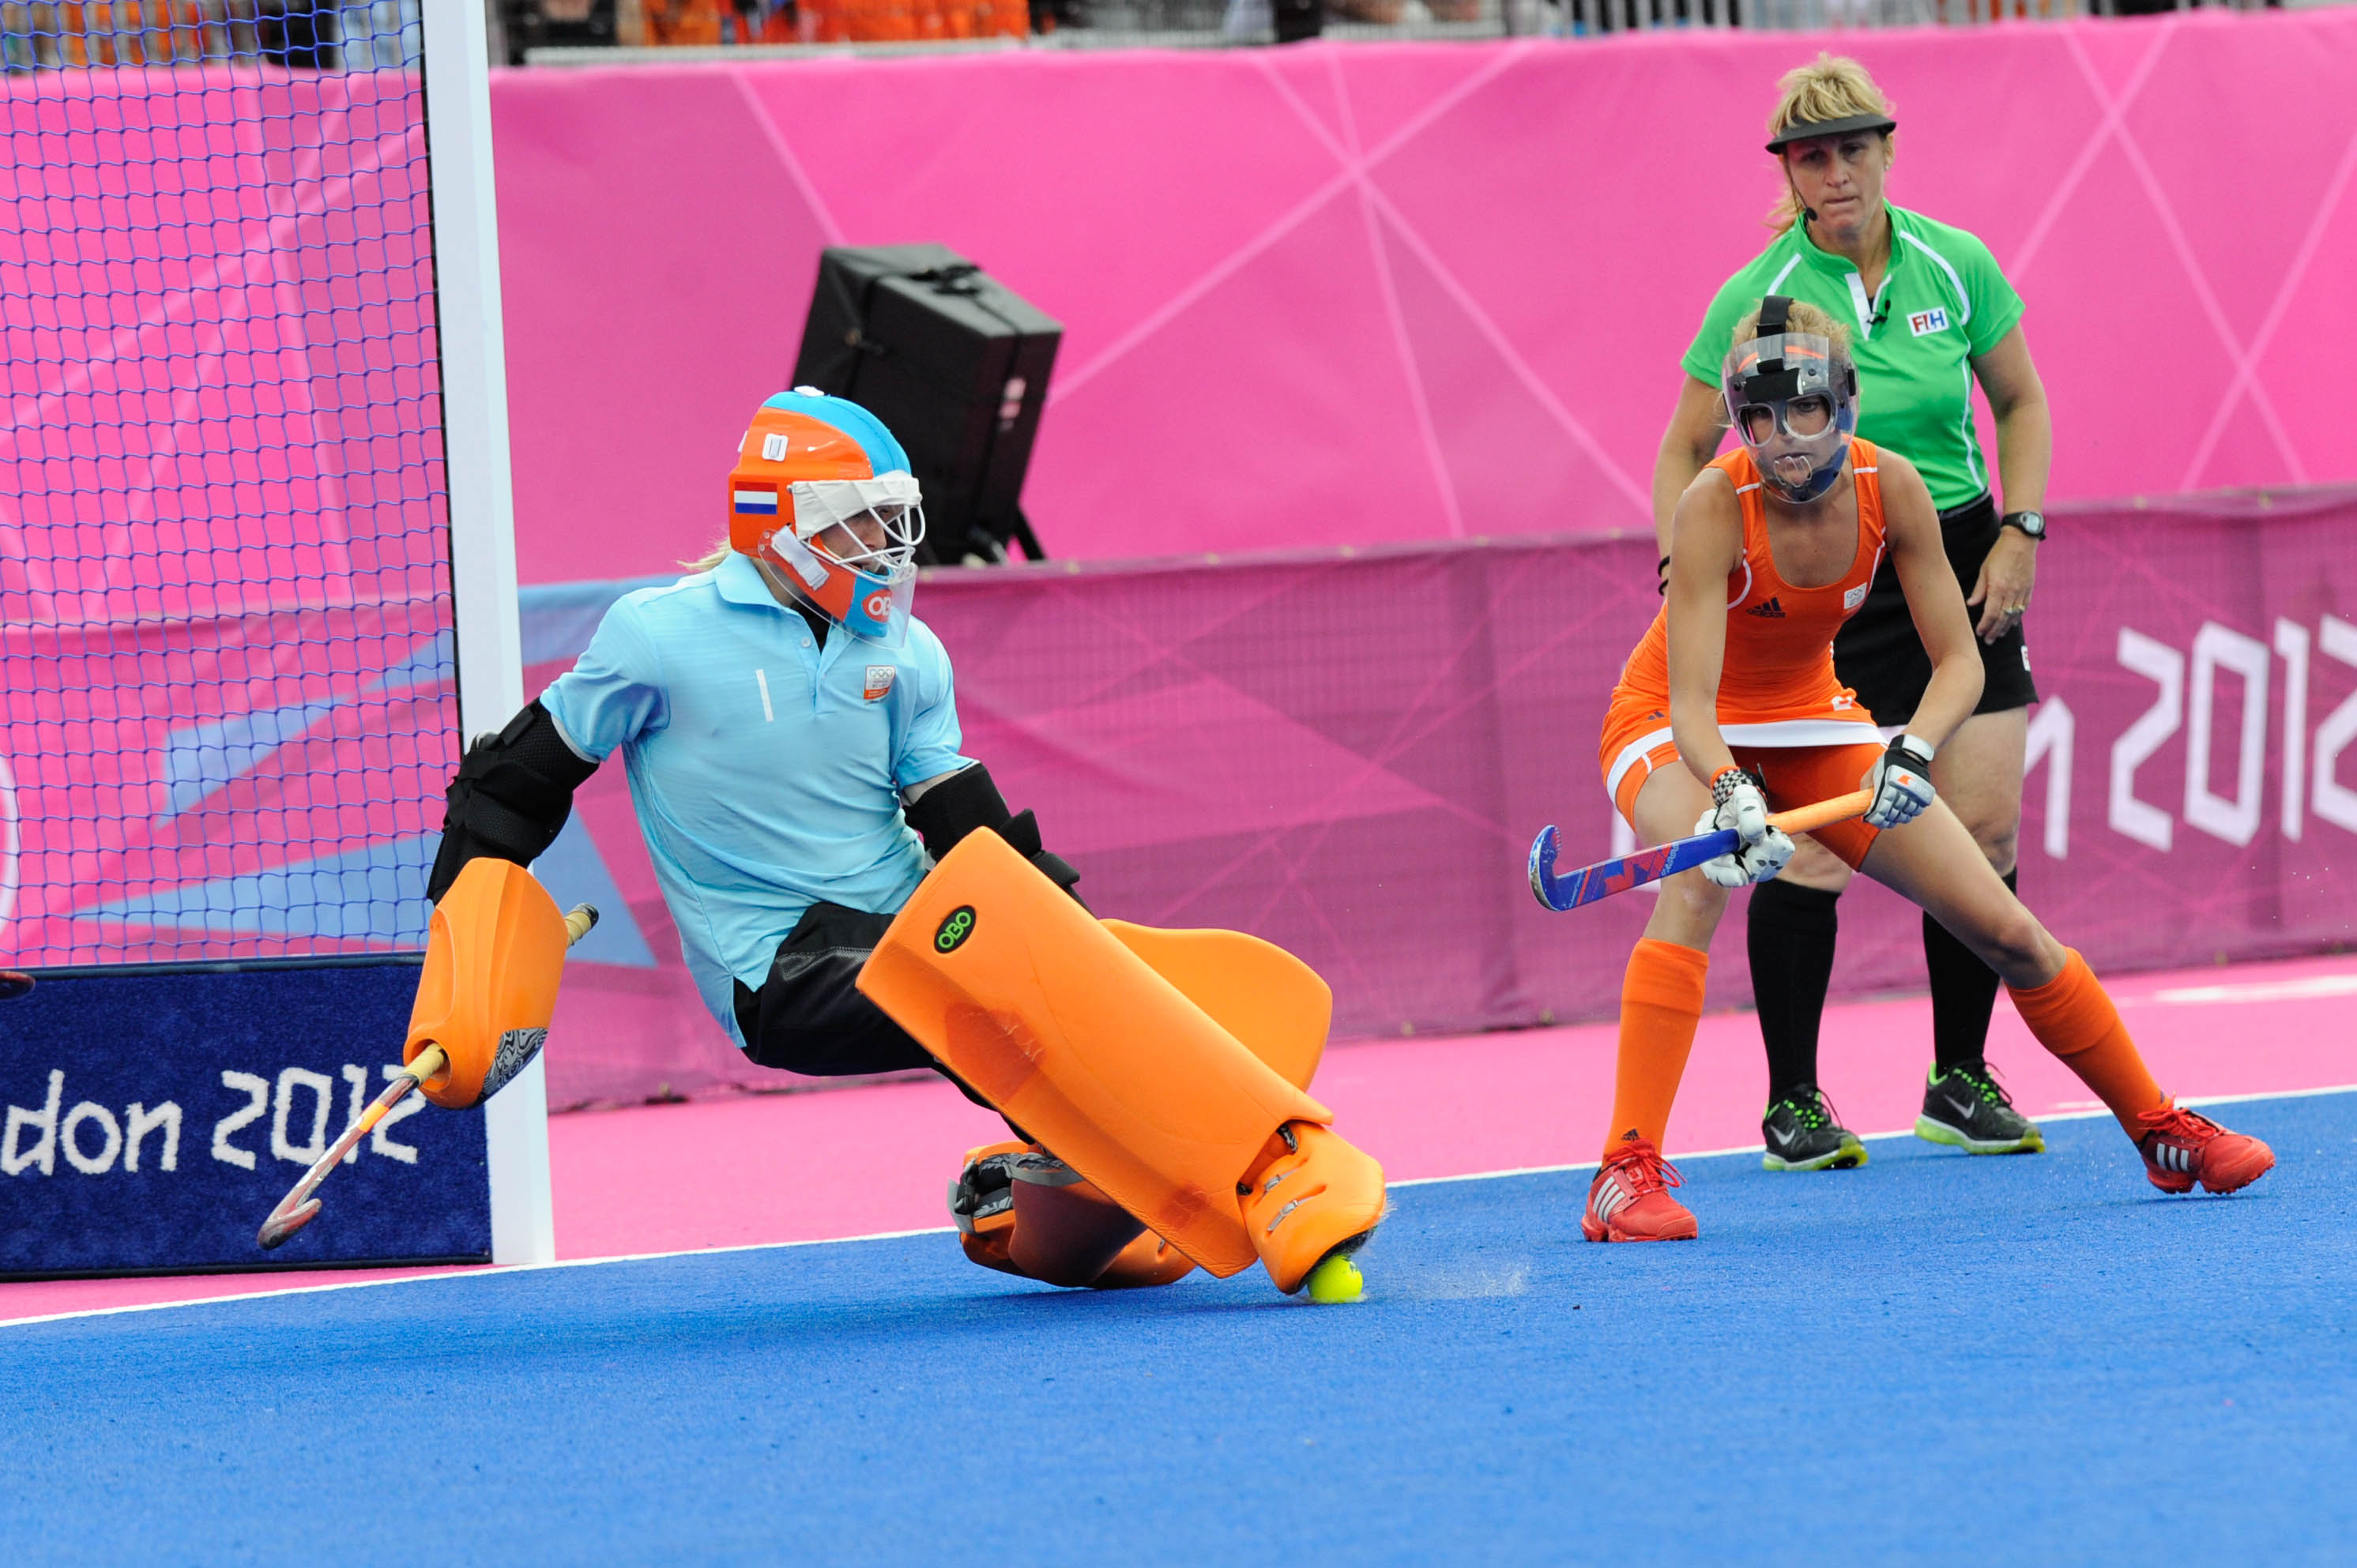 Field hockey coaching: four stages of goalkeeper kicking - The Hockey Paper